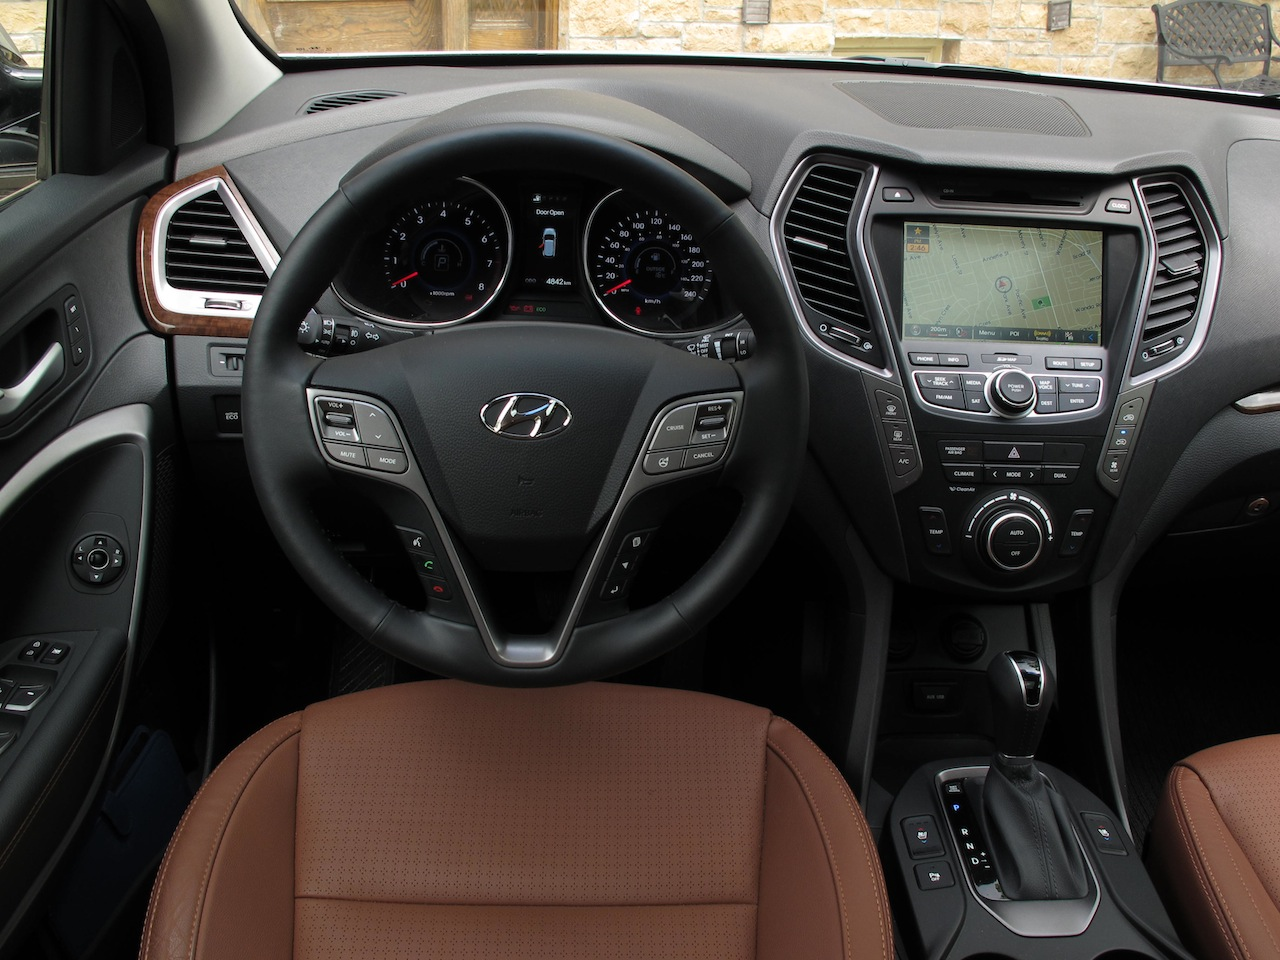 2016 Hyundai Santa Fe >> 2014 Hyundai Sante Fe XL Review - Cars, Photos, Test Drives, and Reviews | Canadian Auto Review